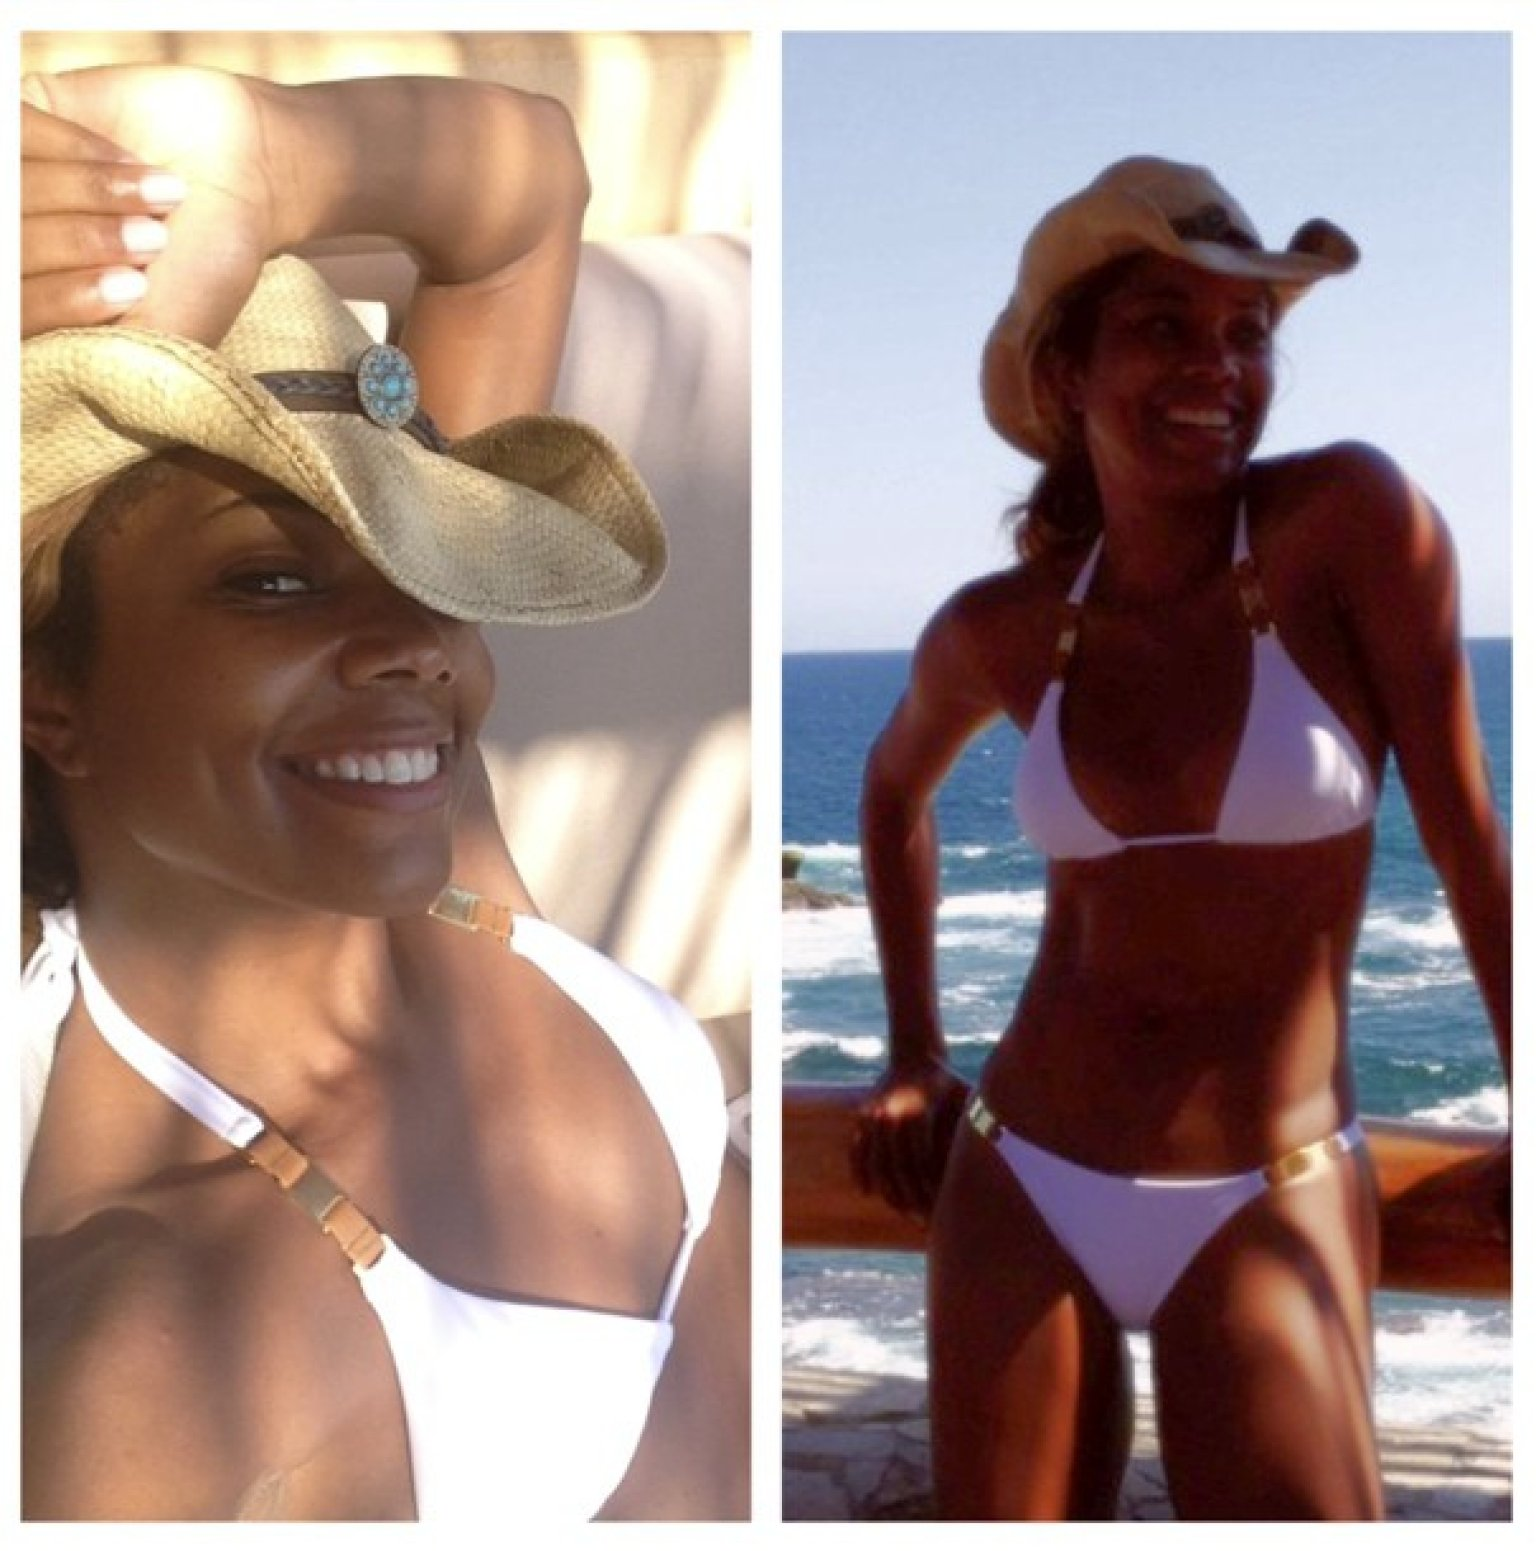 Jacky Joy! gabrielle union bikini pictures white